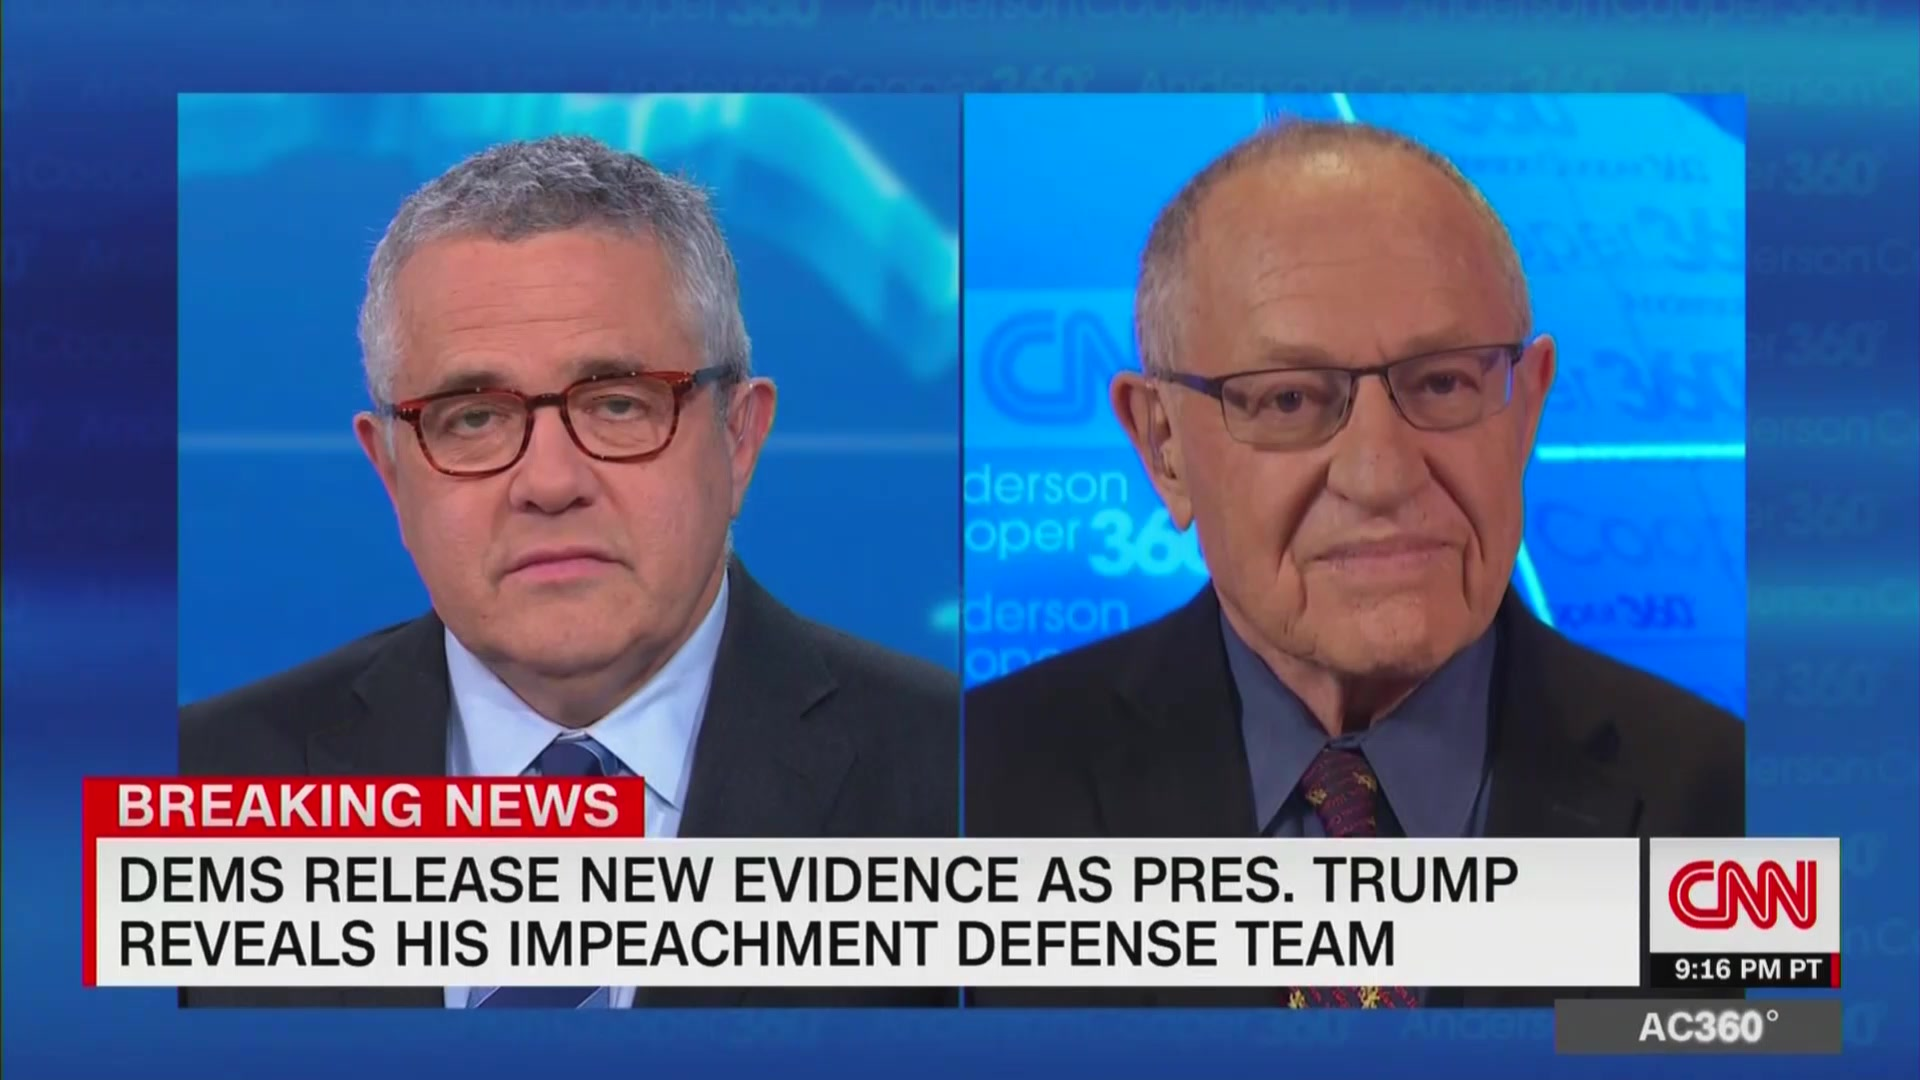 Dershowitz Says He's 'Not Part of the Strategic Legal Team' for Trump's Trial